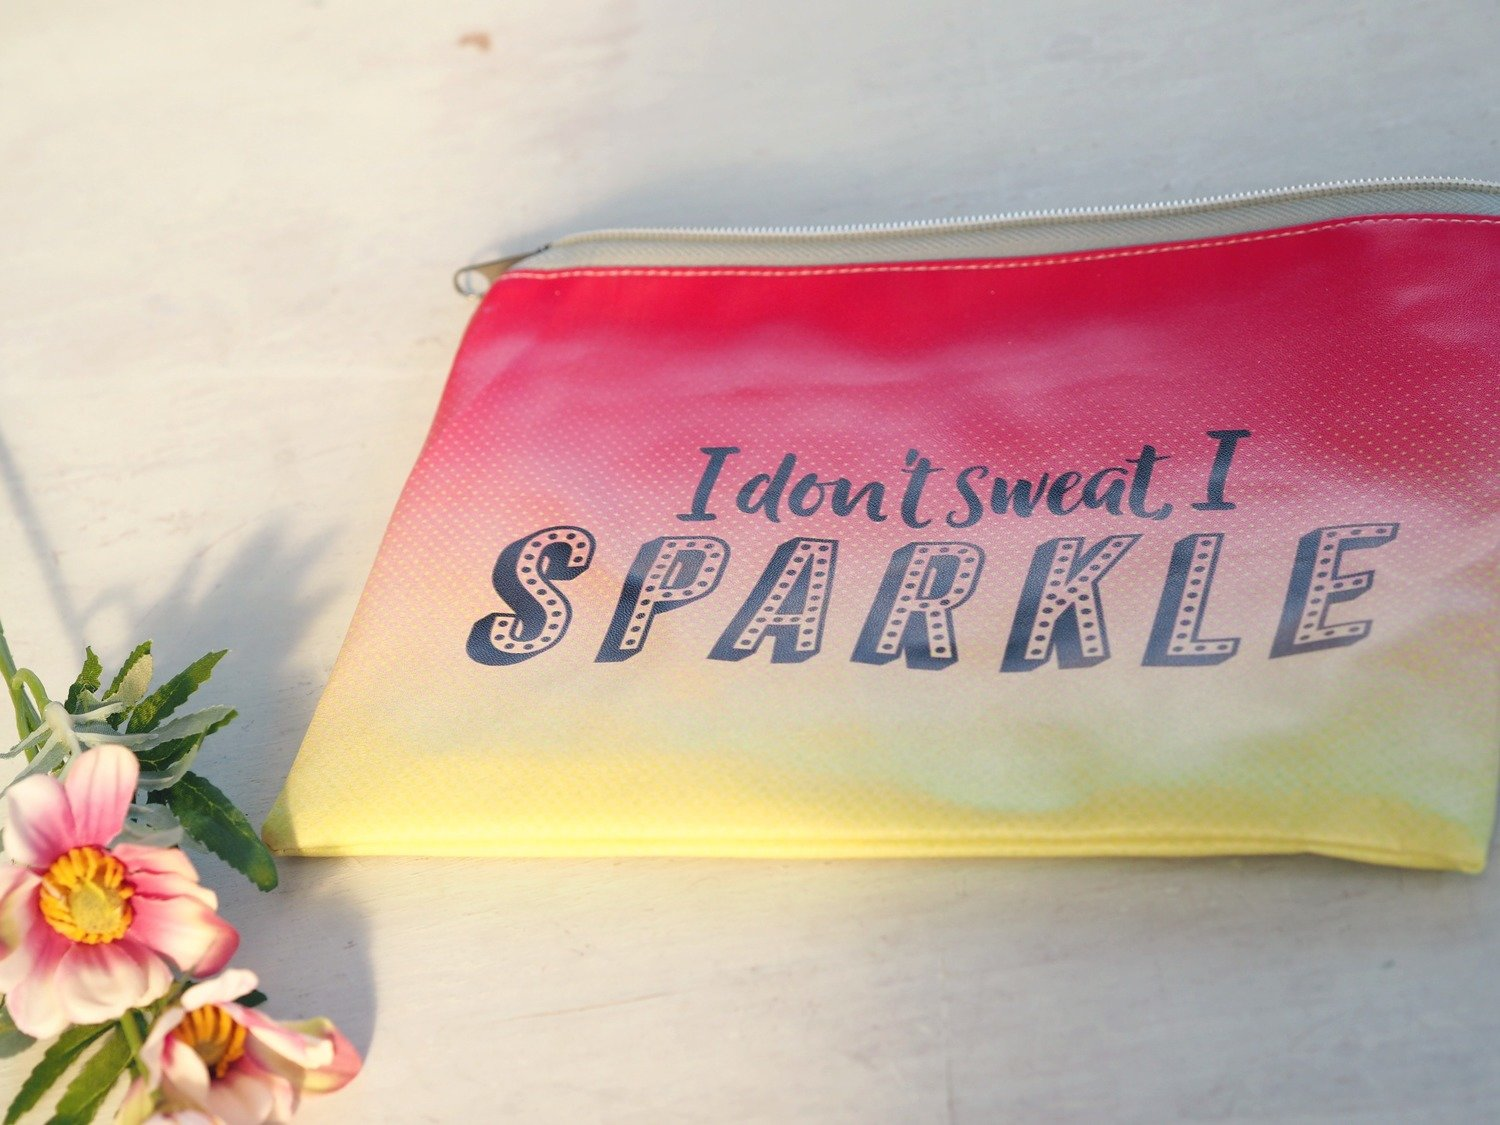 I Don't Sweat I Sparkle Makeup Bag